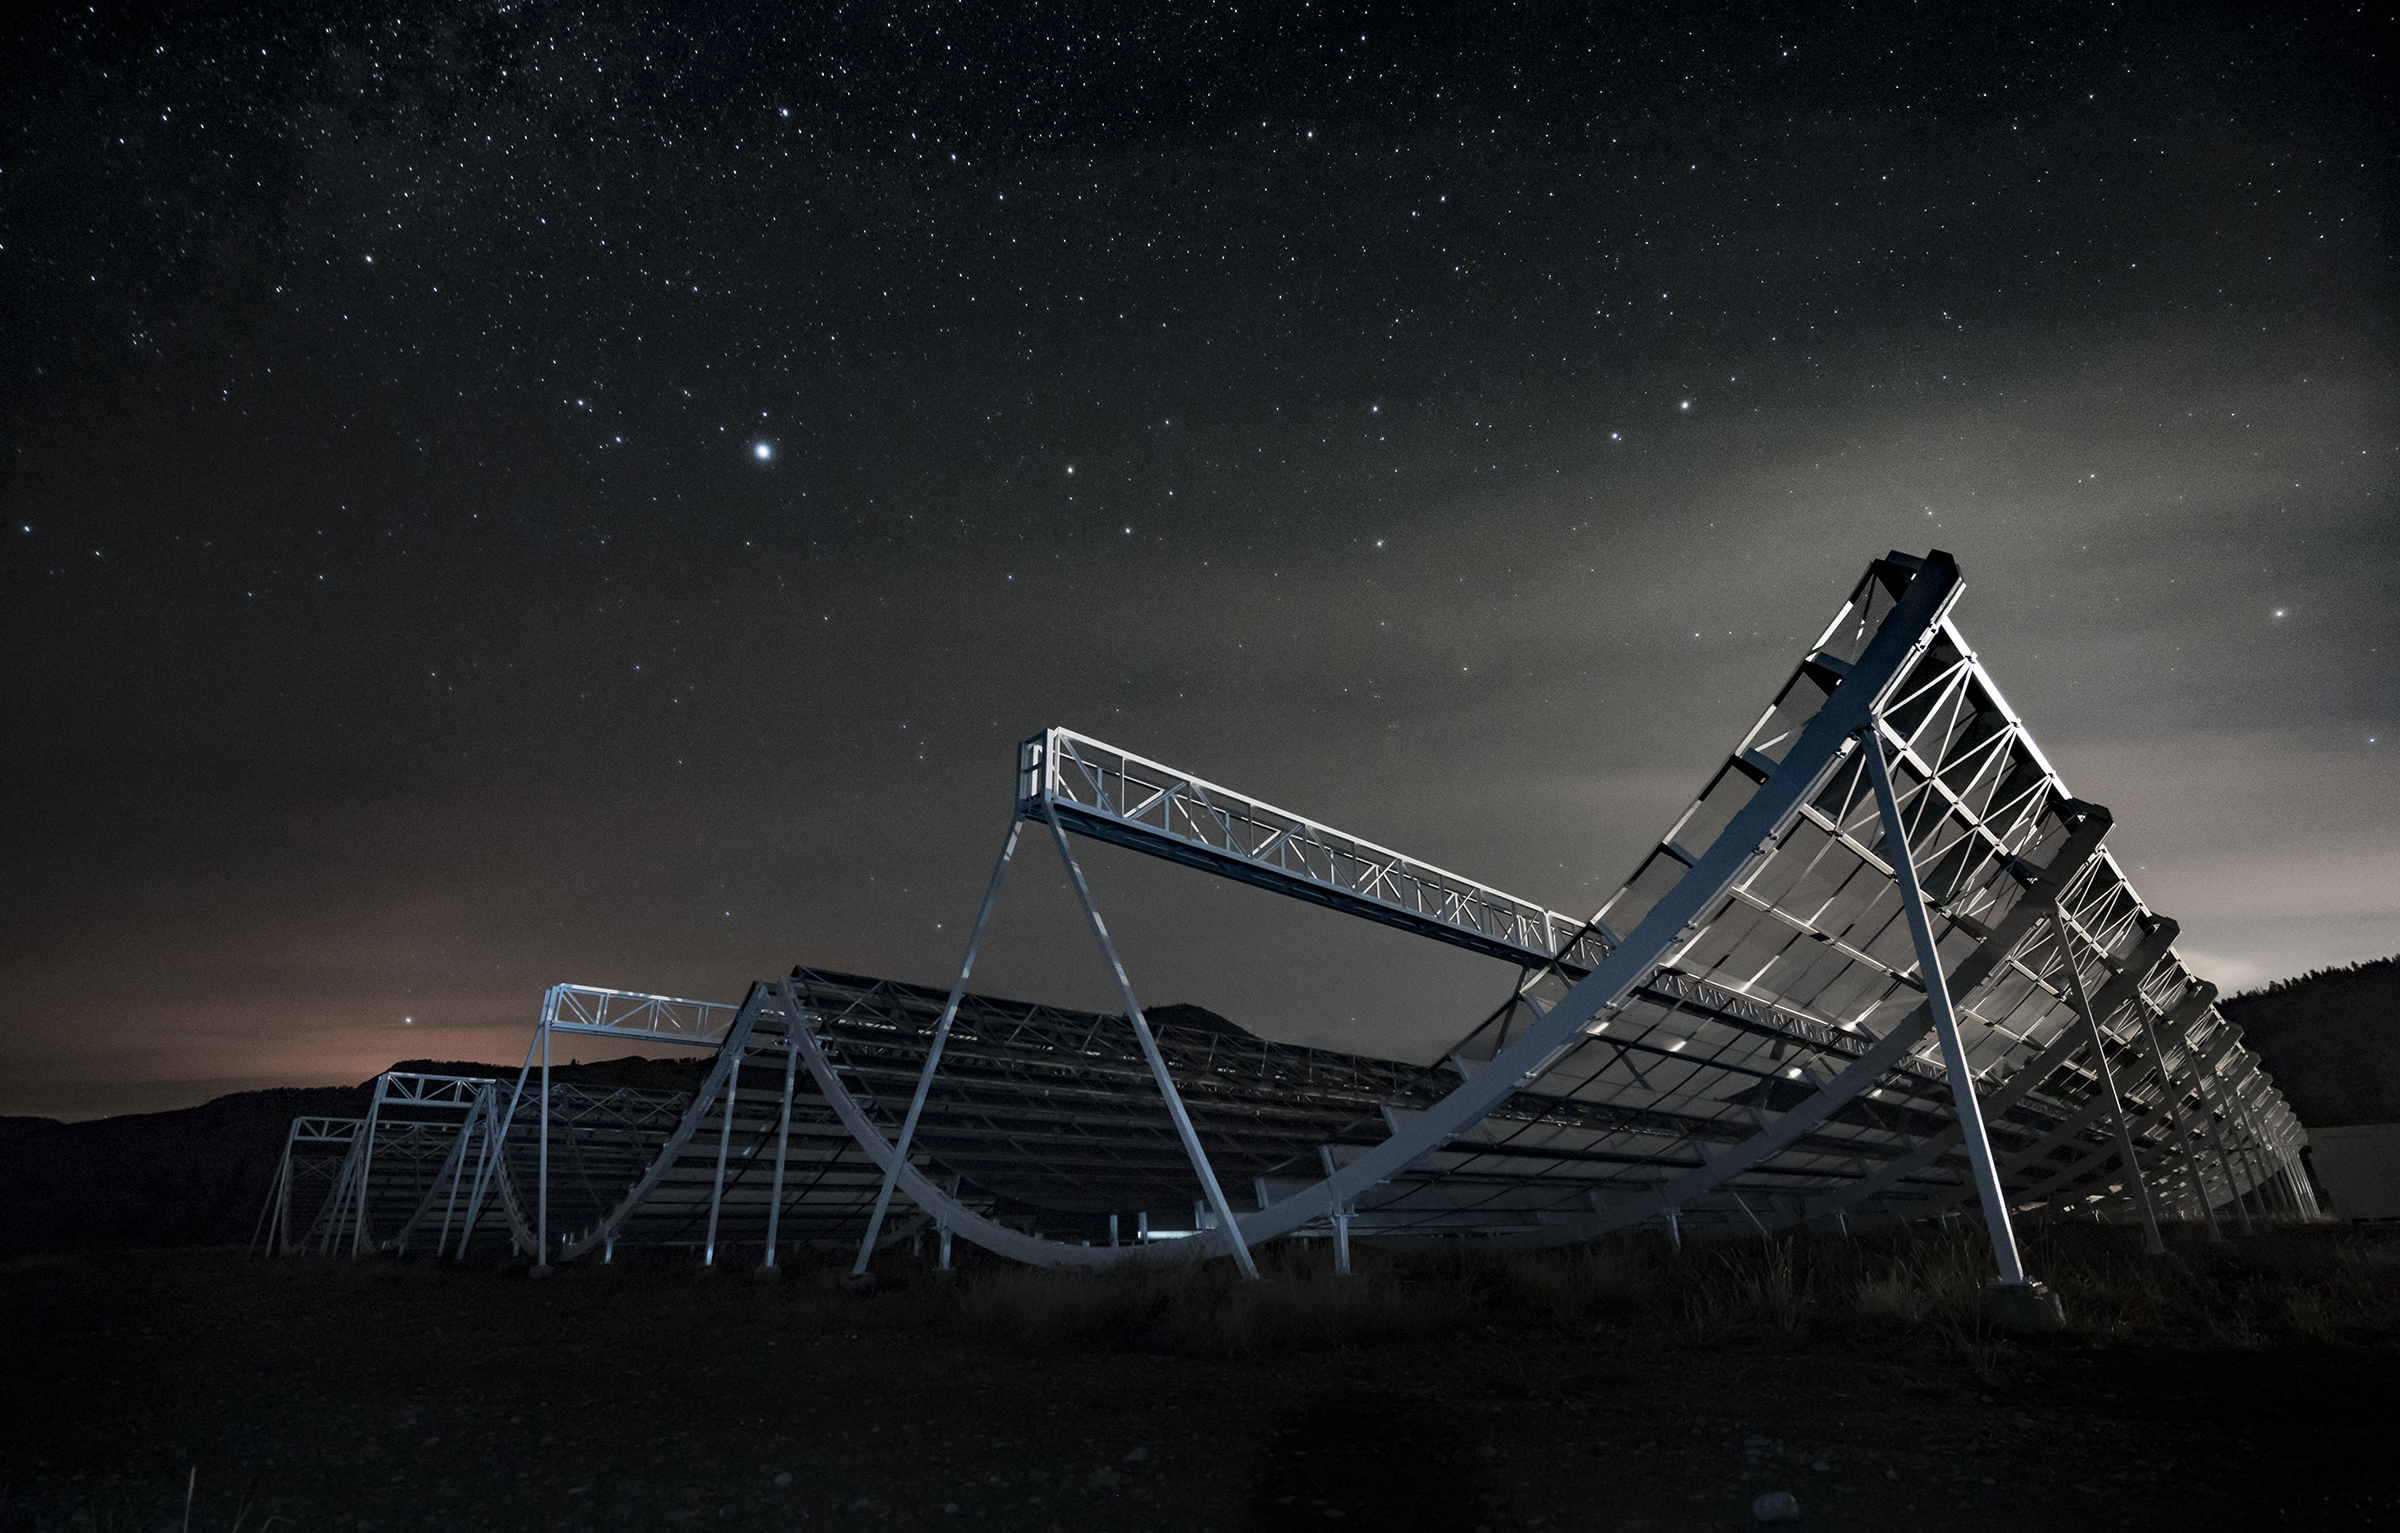 A Canadian discovery: Repeating fast radio burst from space detected in British Columbia